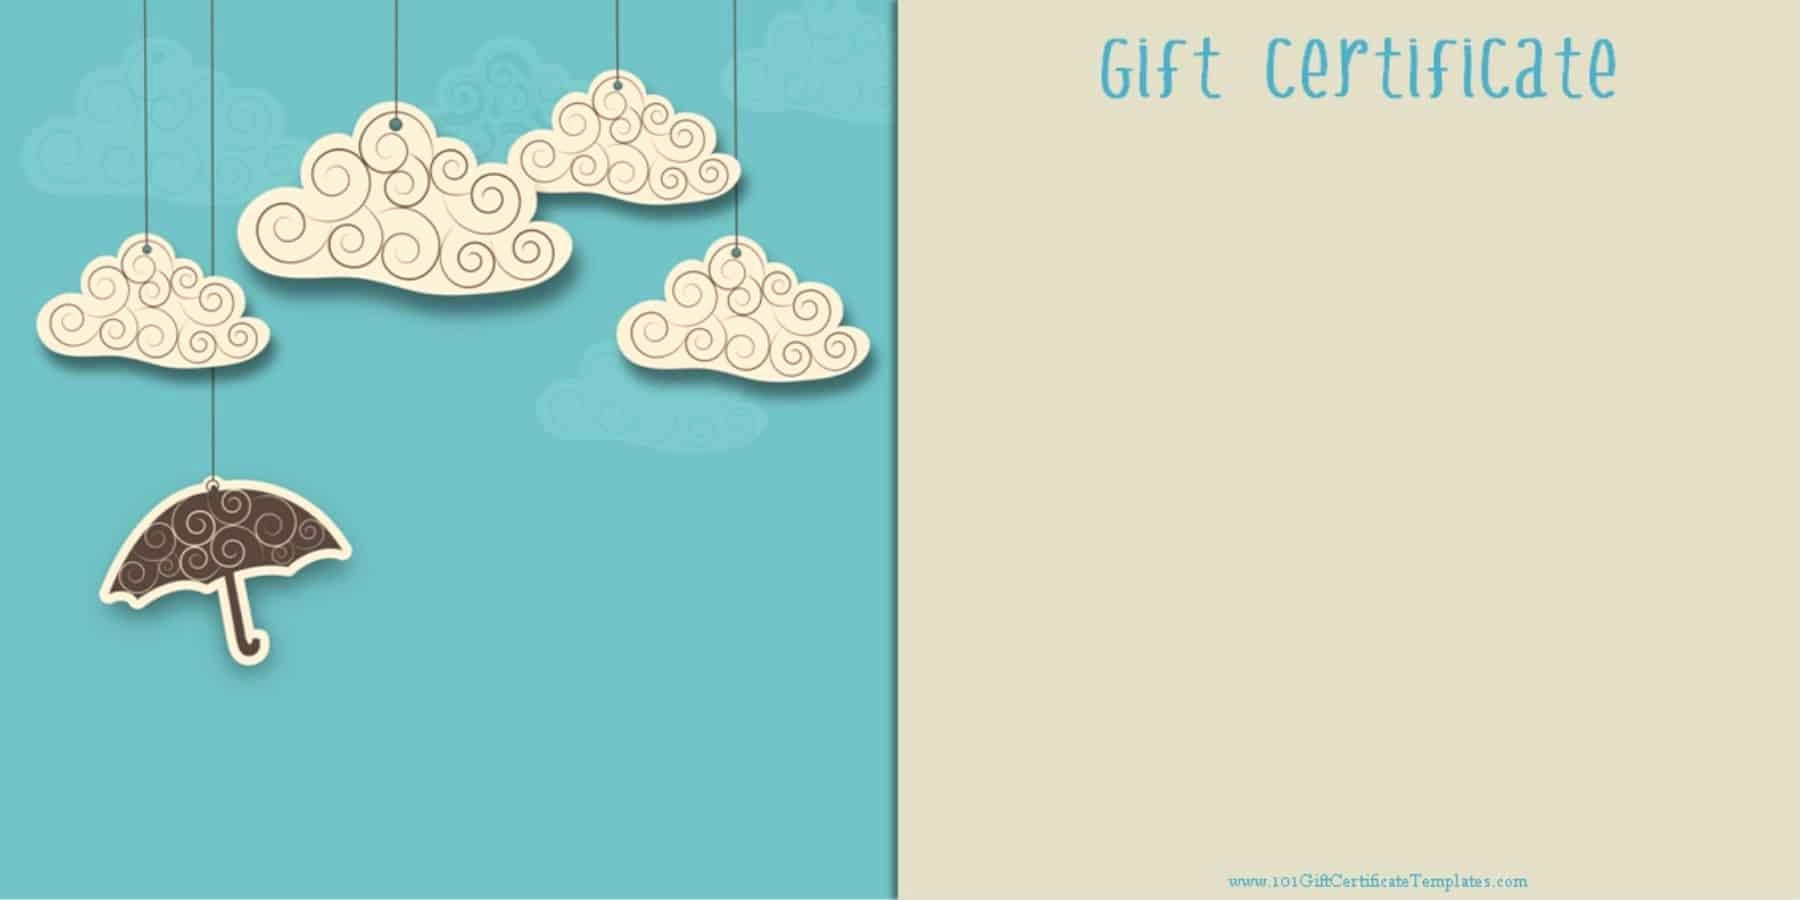 Gift Card Templates Free Printable Luxury Printable Gift Certificate Templates